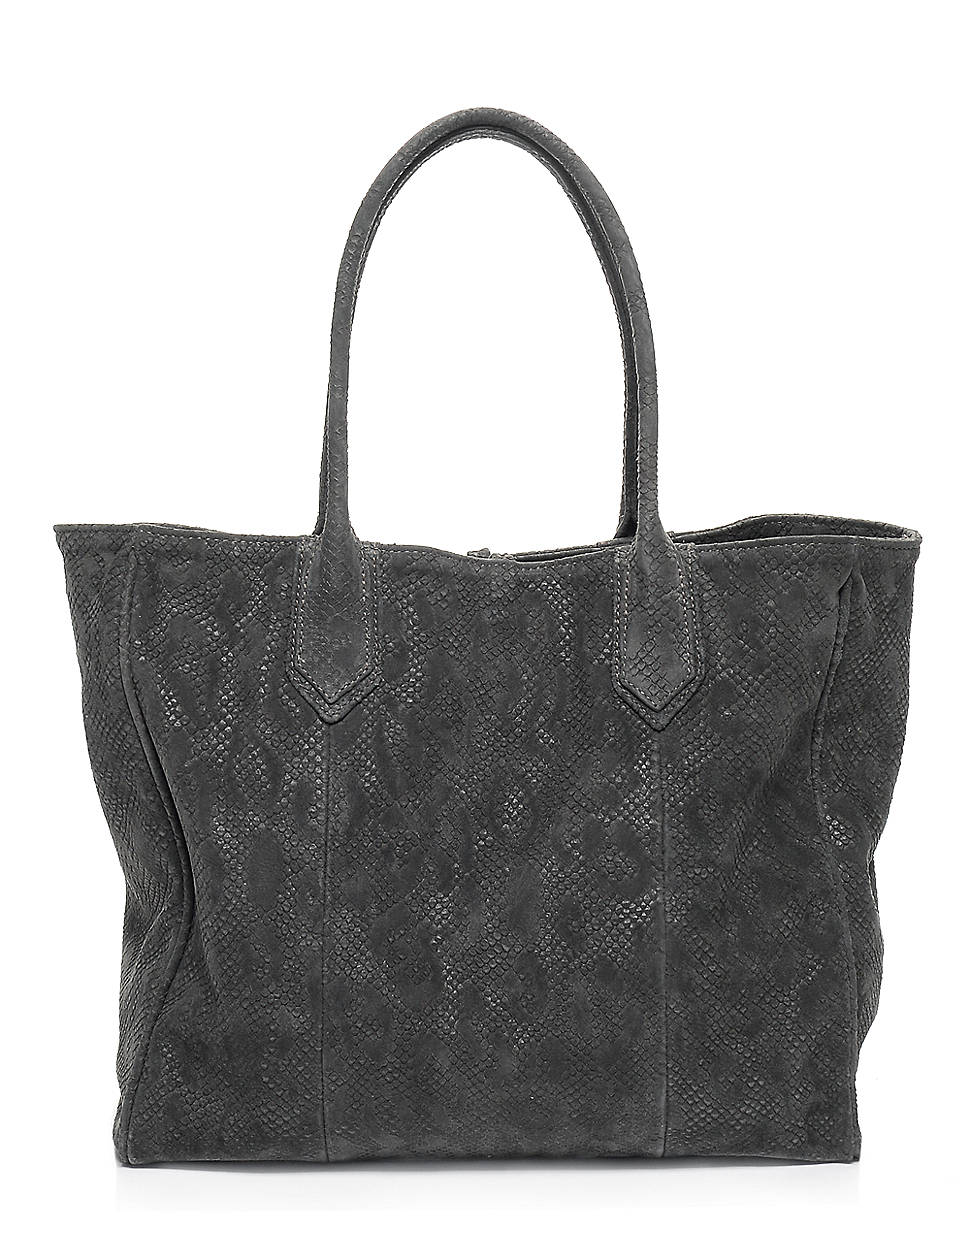 lauren merkin reese embossed calf suede tote bag in gray. Black Bedroom Furniture Sets. Home Design Ideas